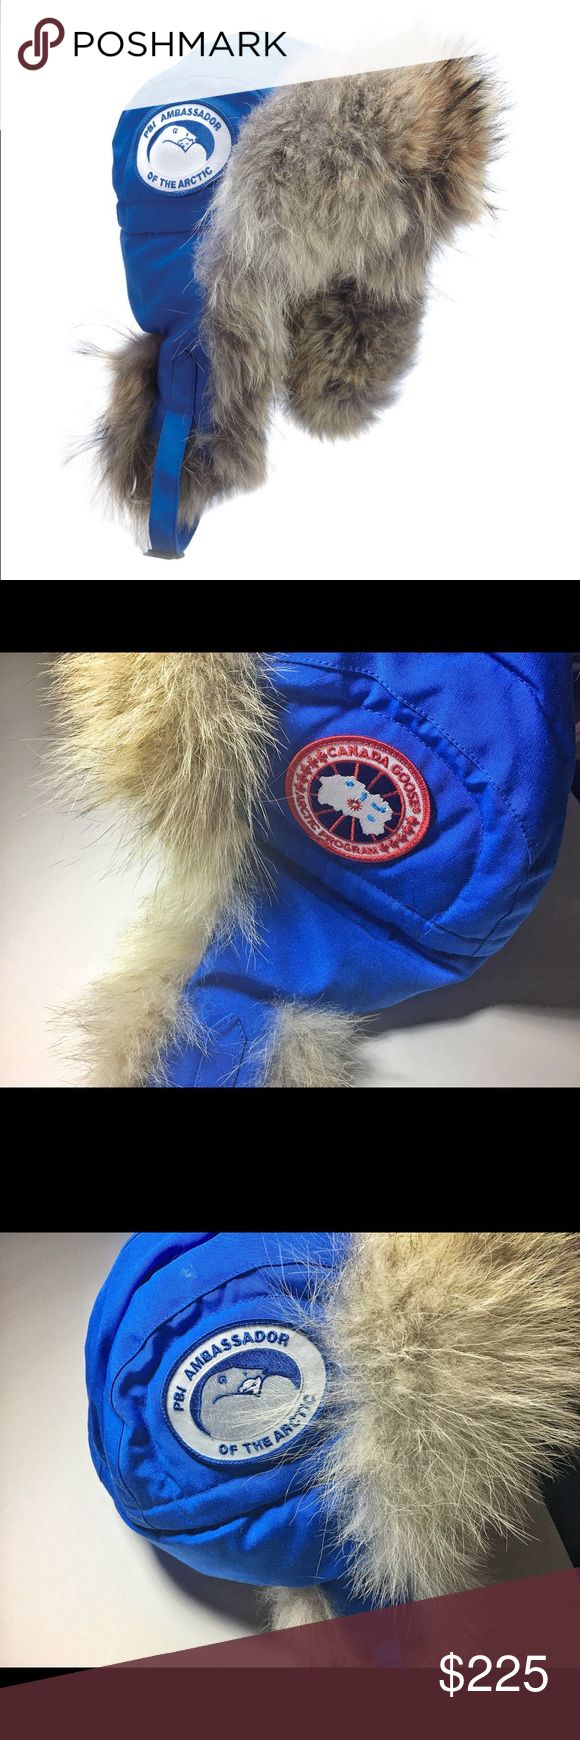 """Canada Goose PBI Aviatoe Hat L/XL """"Turn-of-the-century pilot style with modern-day durability and warmth""""  Style #: 5187MPB  FILL: 625 Fill Power White Duck Down  Features: Water-resistant Arctic-Tech fabric exterior for durability and weather-resistance, Coyote fur ruff visor and ear-flaps are a turn-of-the century functional feature that kept pilots warm in an open cockpit at high speeds, Adjustable buckle chin strap for high-wind conditions, Polar Bears International patch on right side…"""